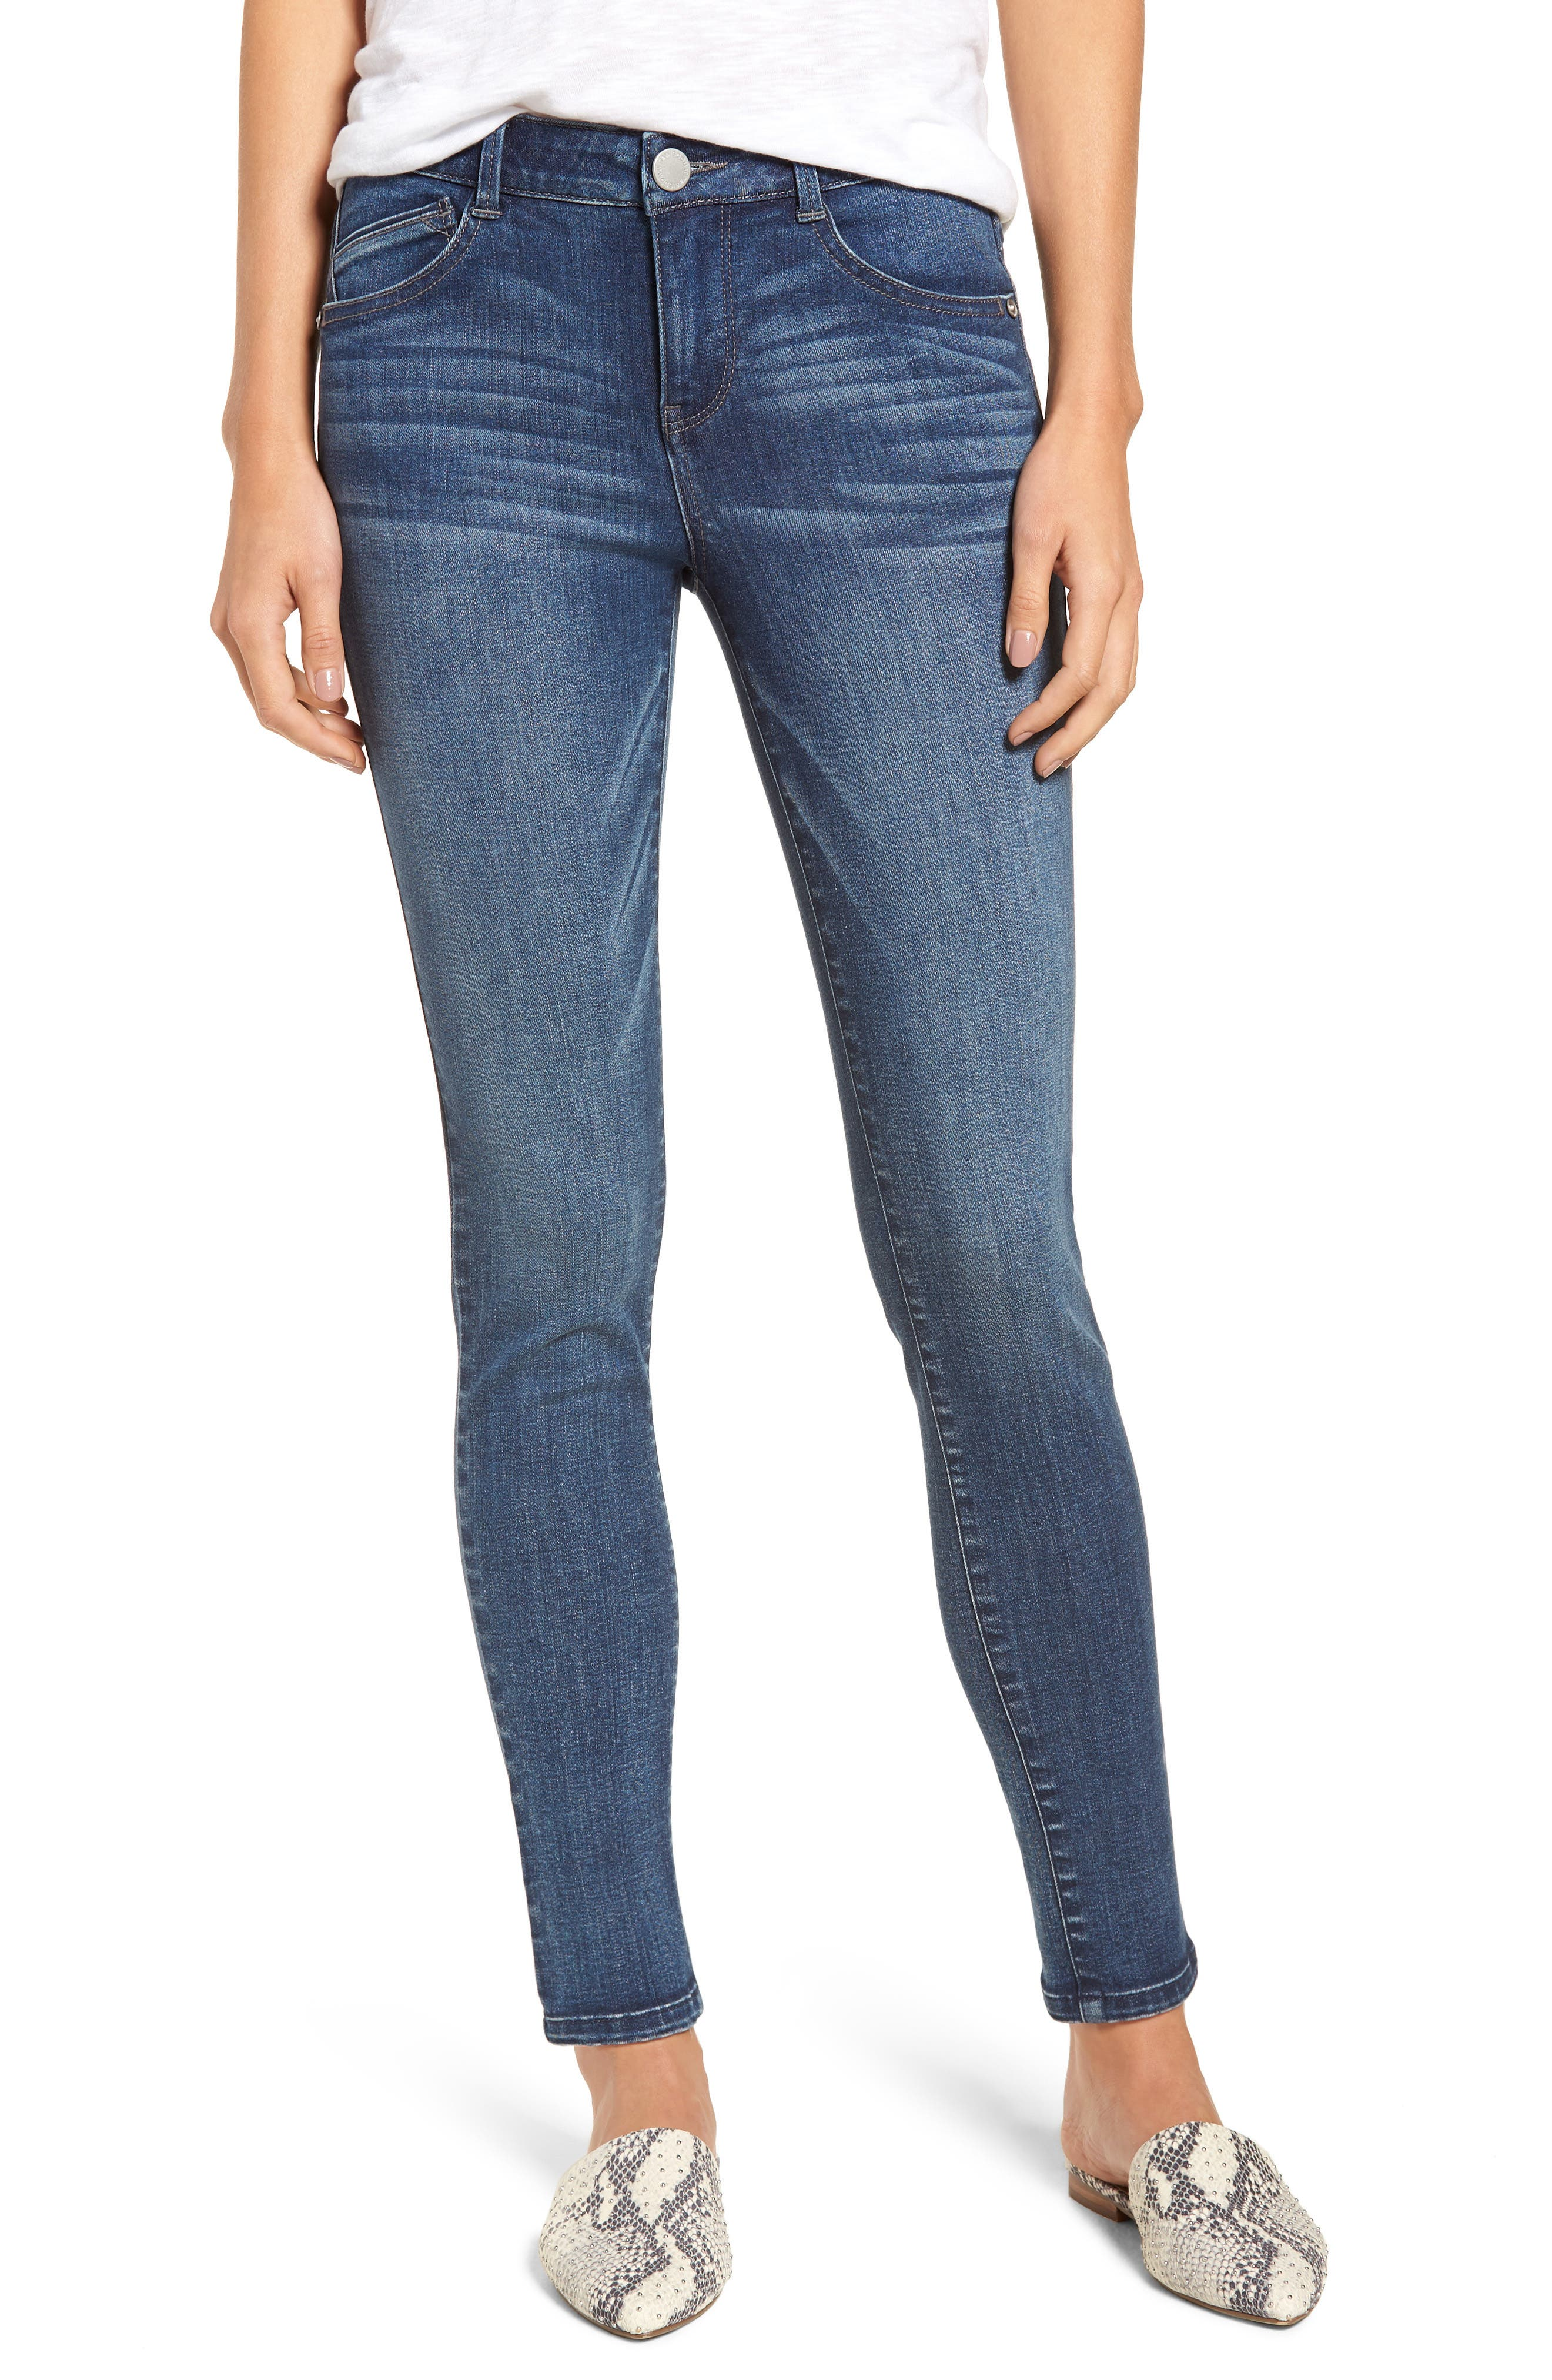 Ab-solution Ankle Skinny Jeans,                         Main,                         color, 420